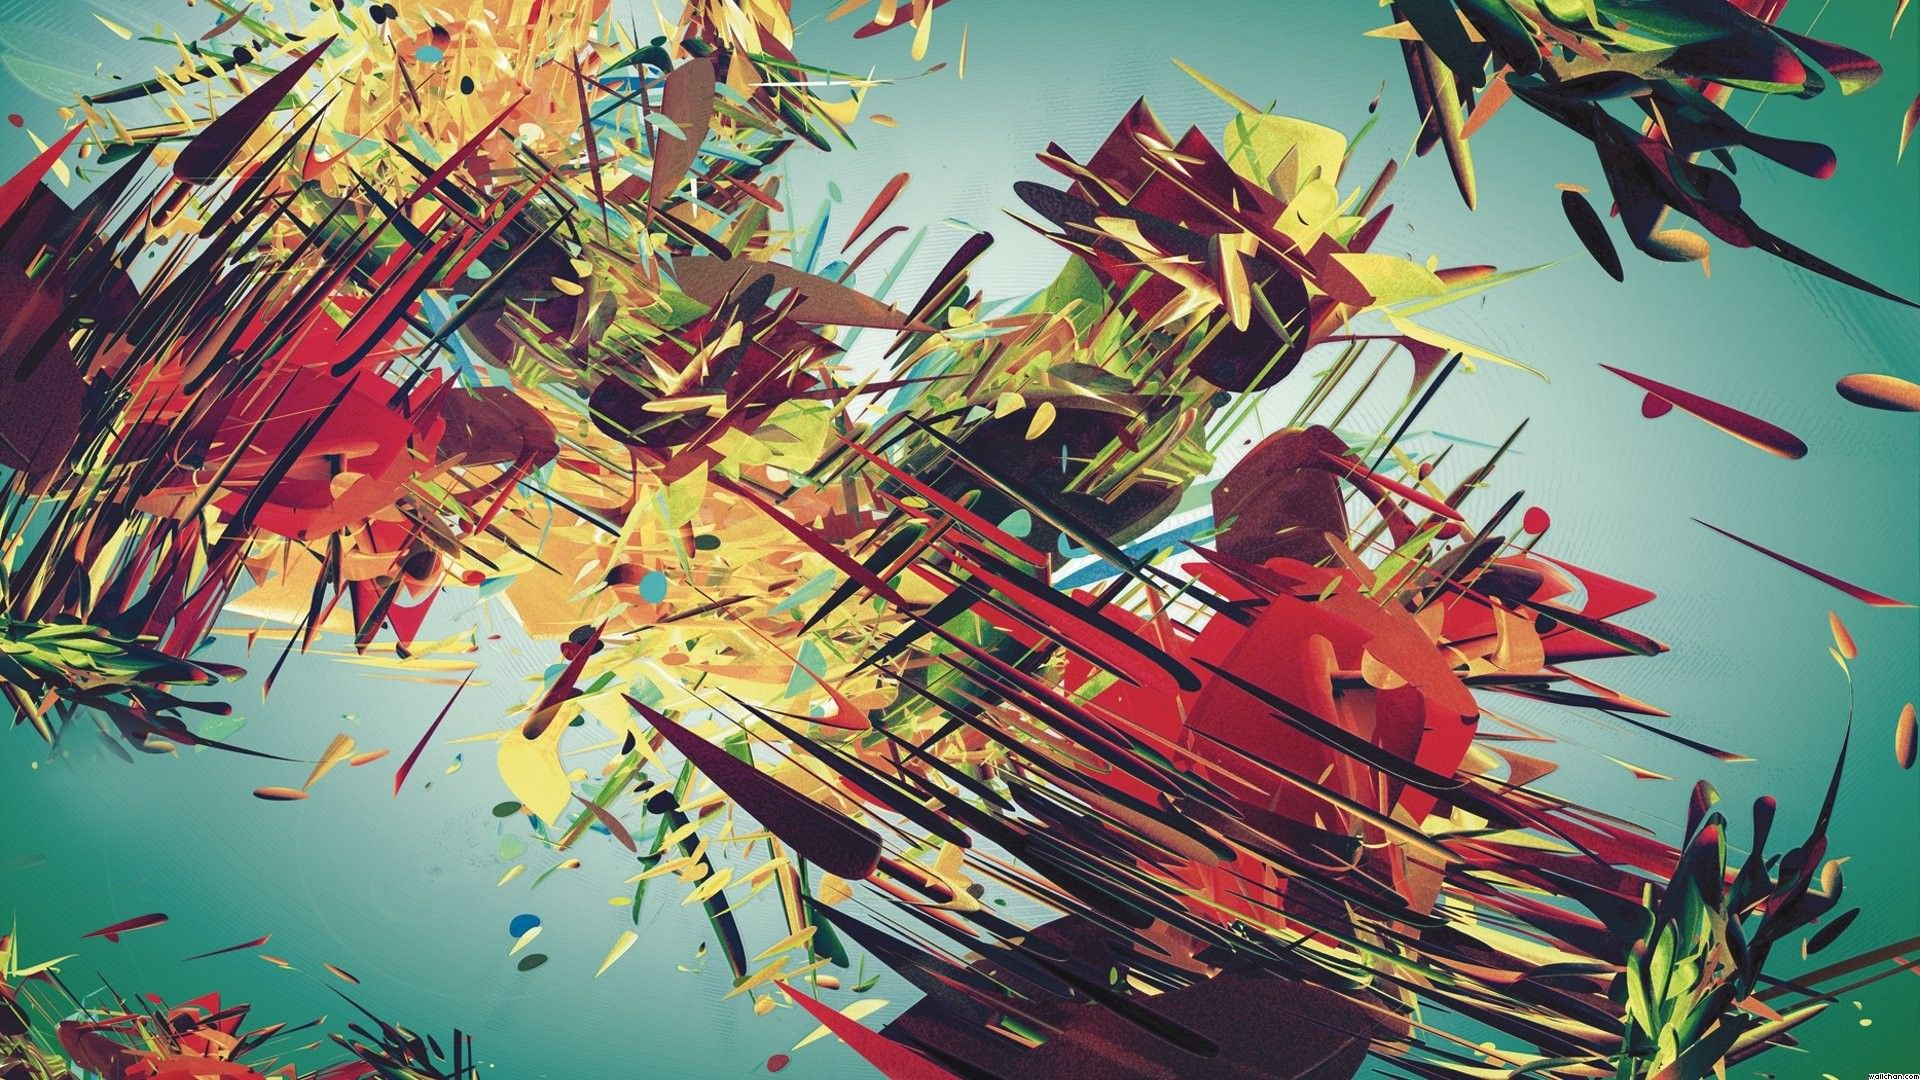 Abstract Graffiti Wallpapers Top Free Abstract Graffiti Backgrounds Wallpaperaccess